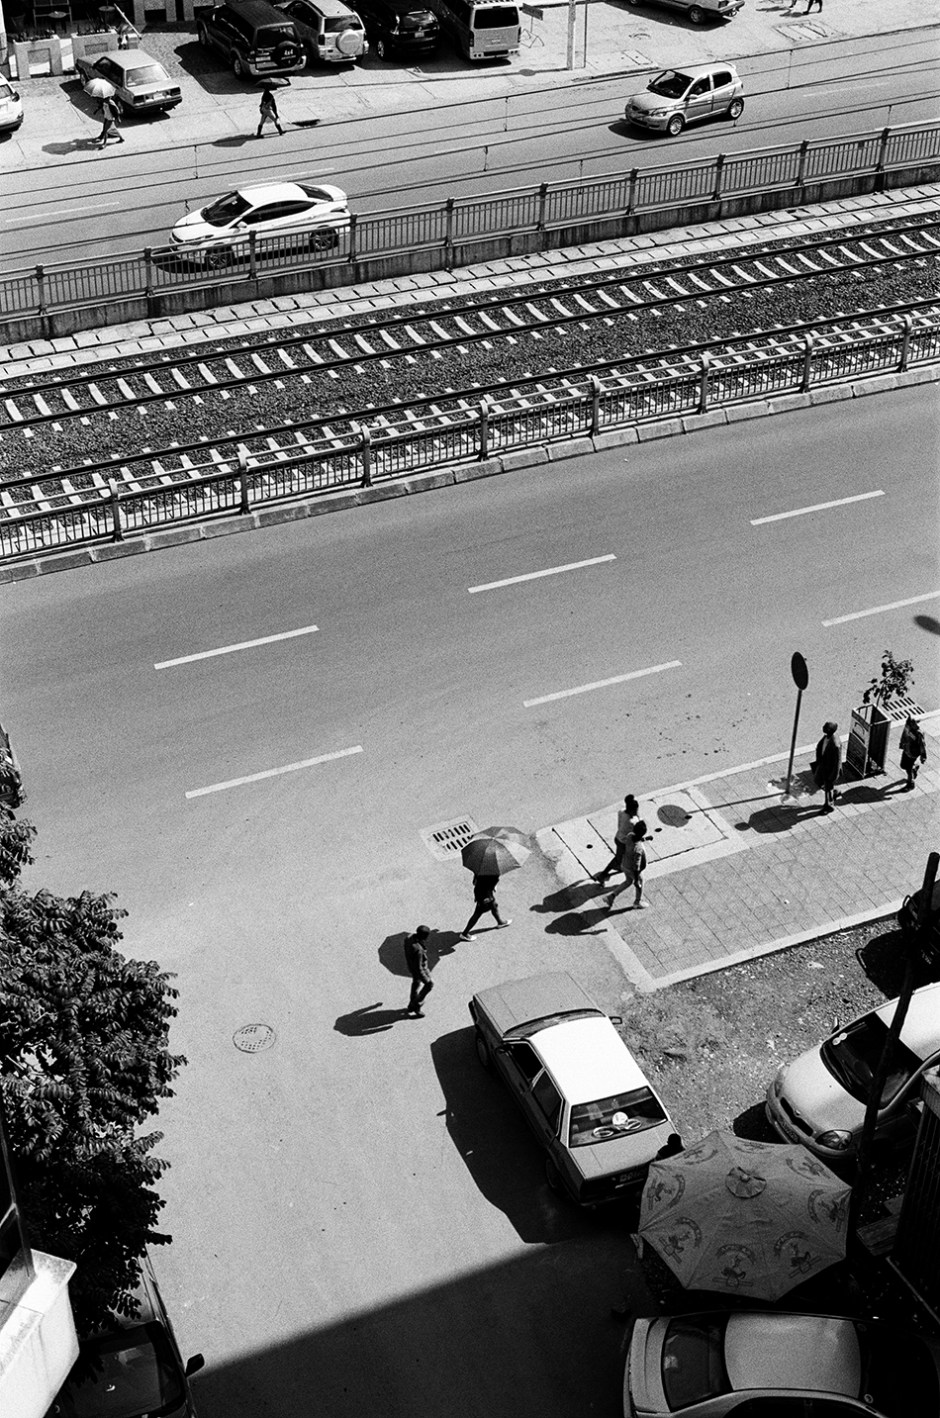 5 - People crossing street in Addis